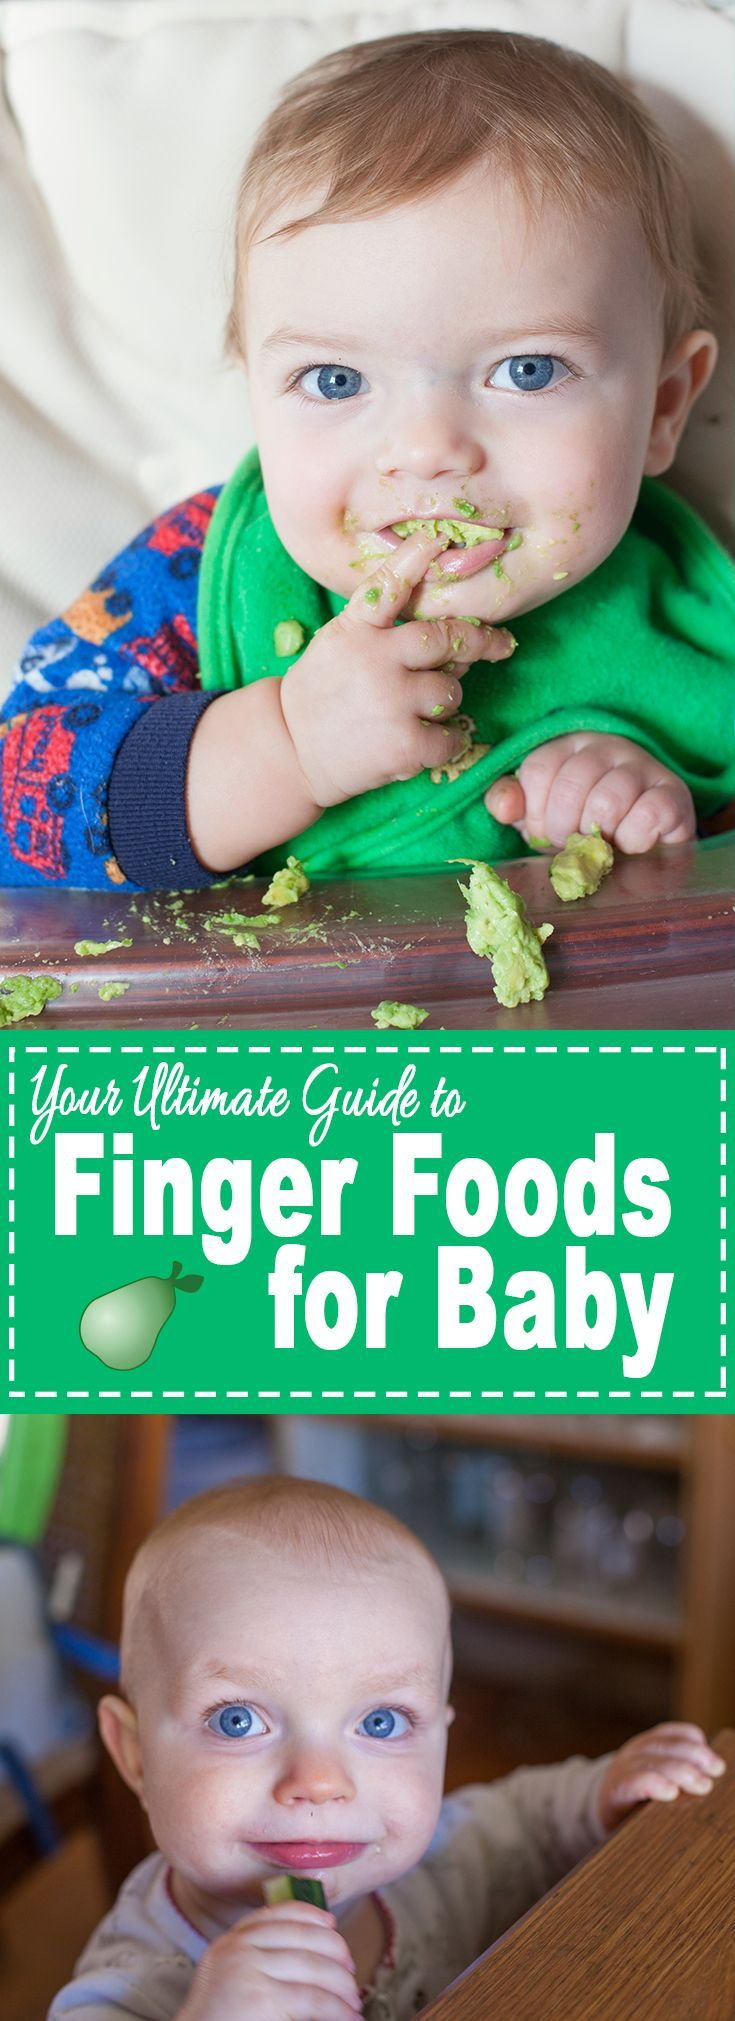 The best finger foods for baby are most likely already in your fridge or pantry! Here's our top baby finger food recommendations plus gear and safety tips. From http://EatingRichly.com